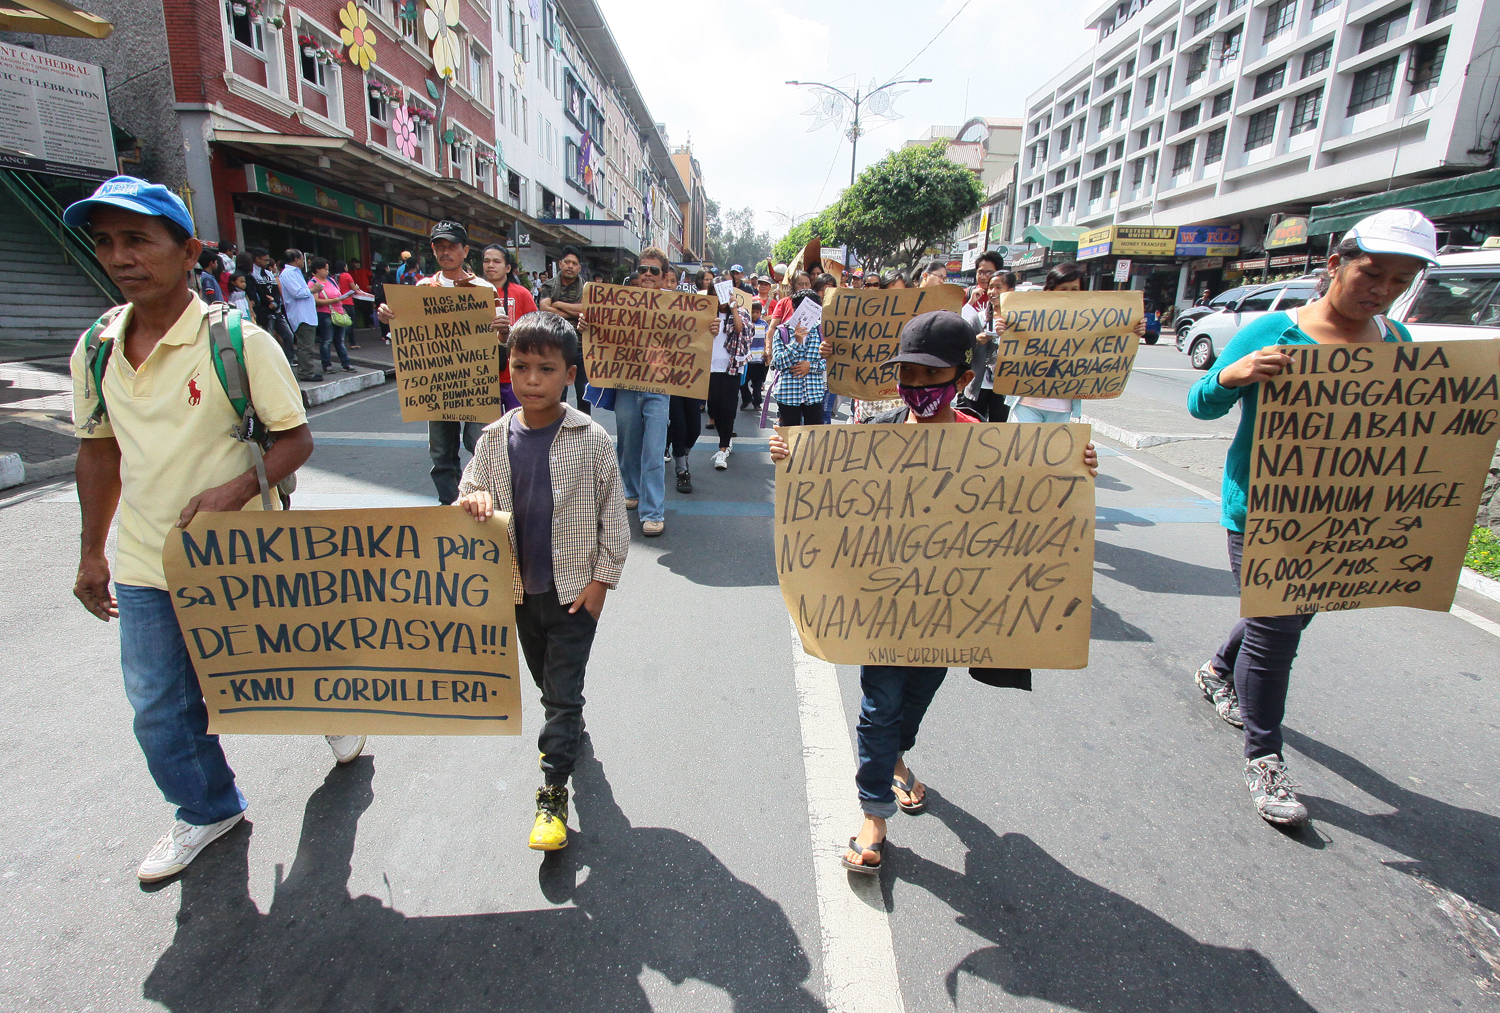 MARCHING. Militants together with their children carry placards in a march rally along the central business district of Session road Baguio City 1 May during the celebration of Labor Day. Photo by Mau Victa/Rappler